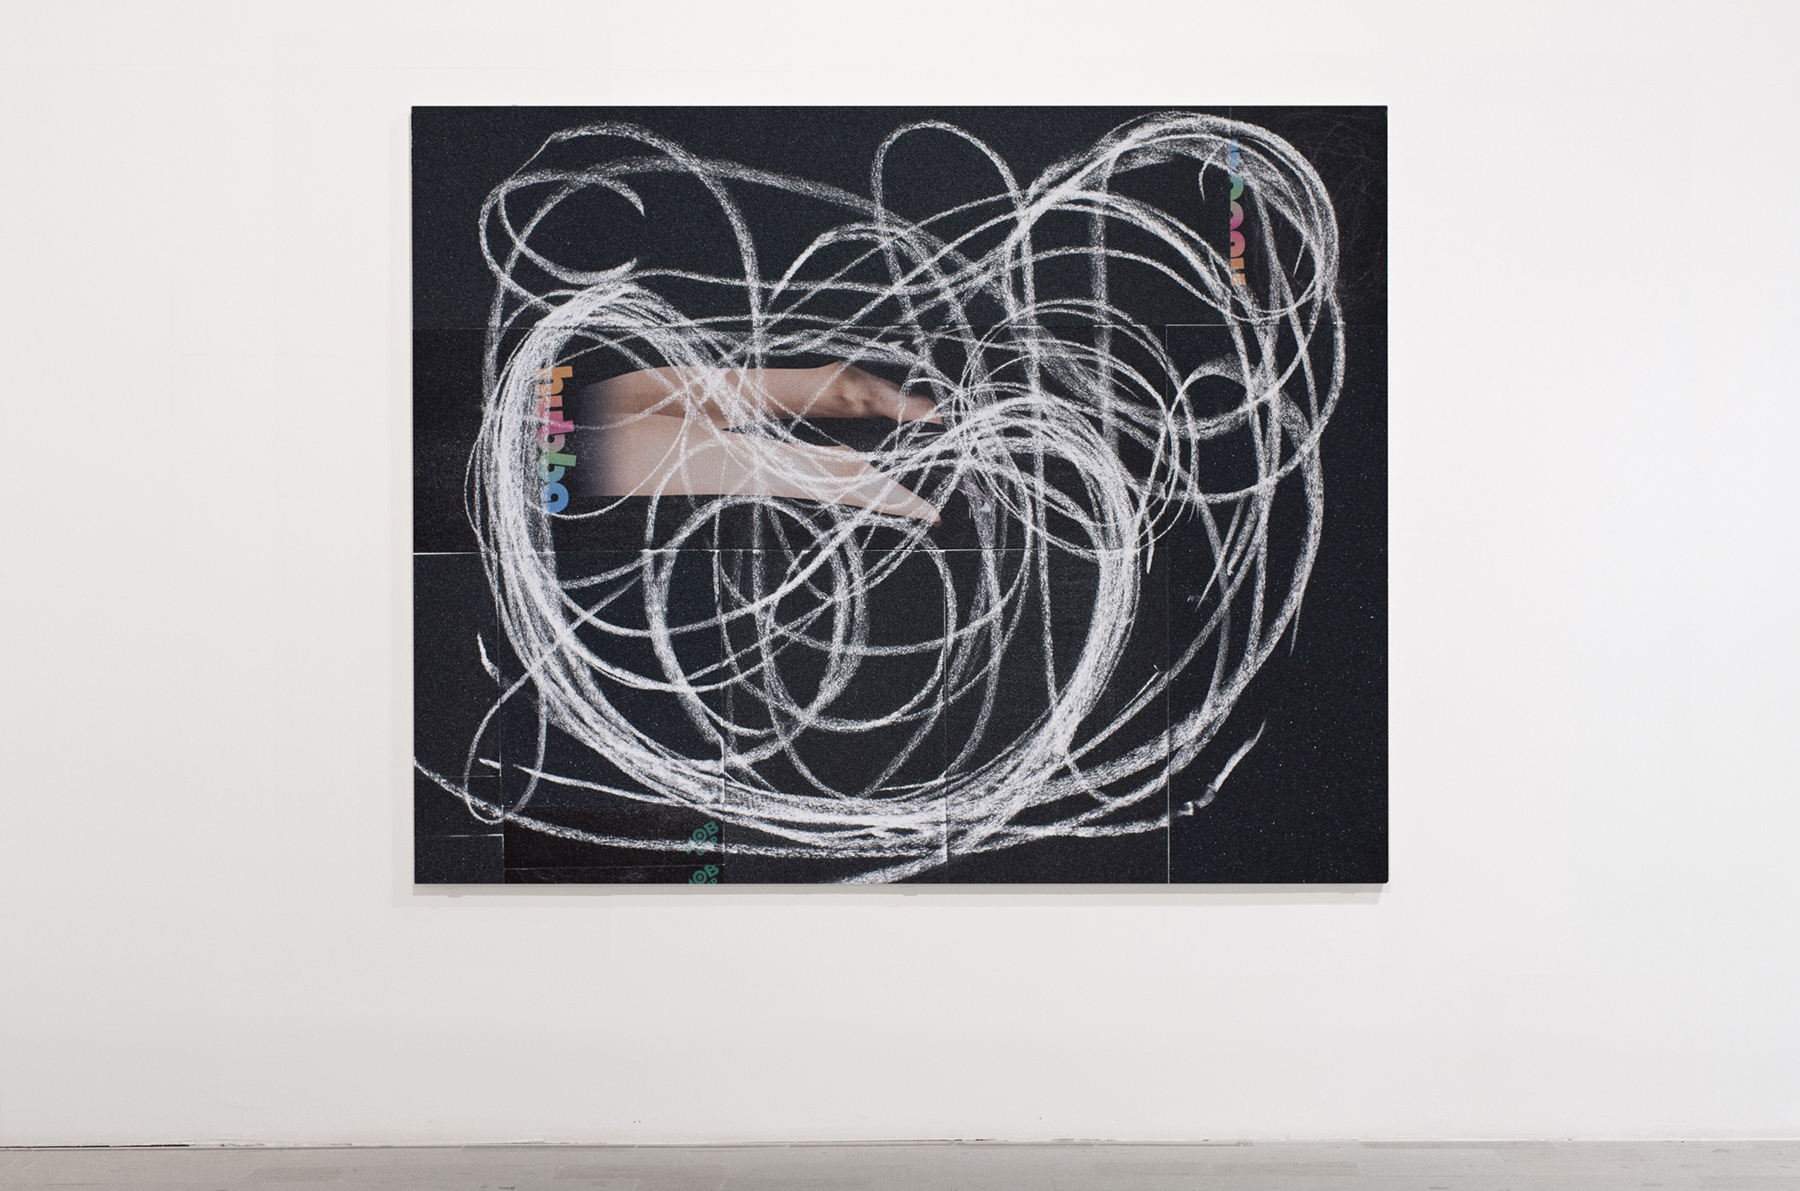 Rui Mizuki,  Pool #Broad Beans 1 , 2015, chalk on grip-tapes, 1000 x 727 mm